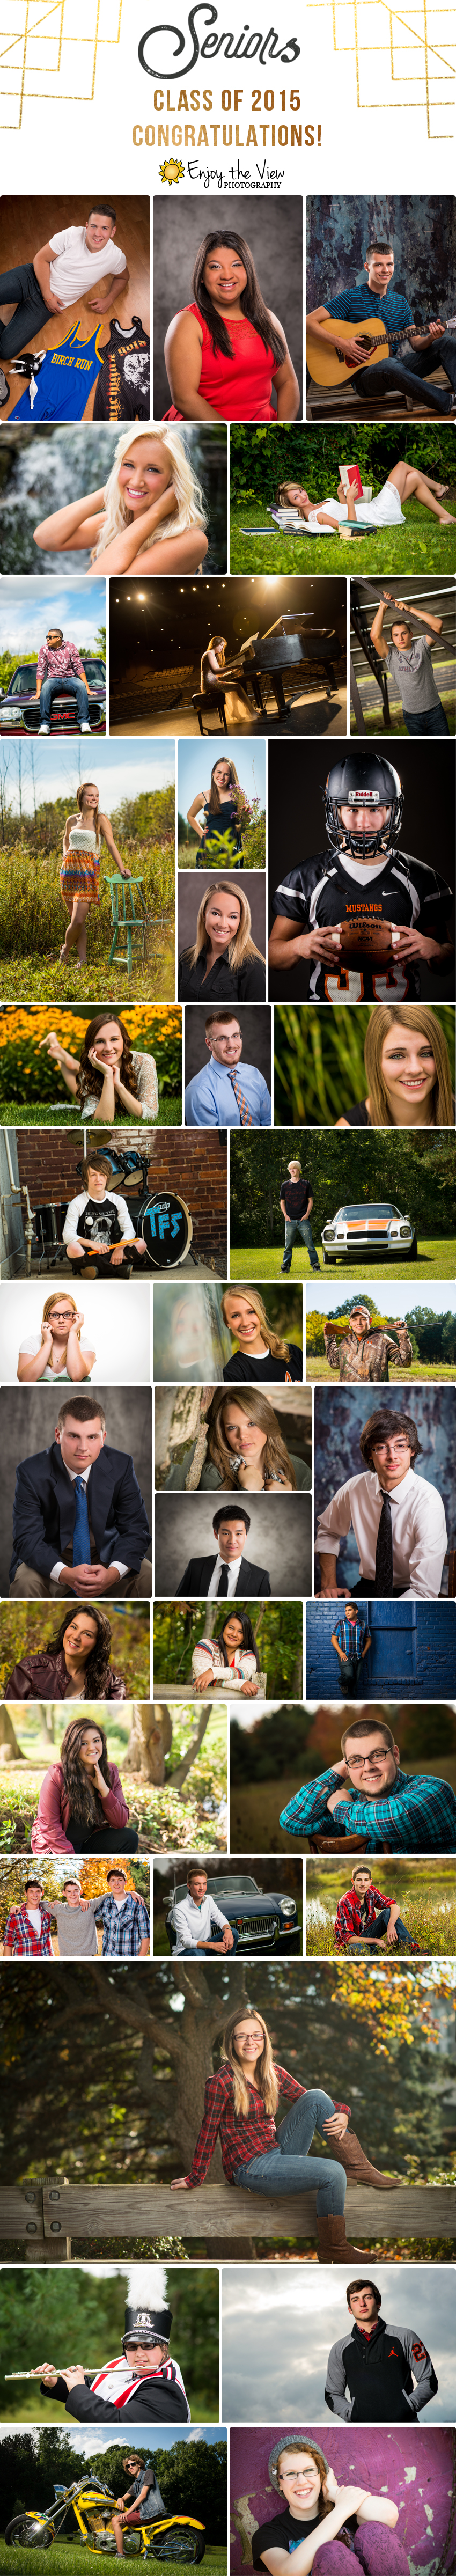 2015, 75% off senior sessions, beach senior photos, Beth Severn, Birch Run High School, Class of 2016, Clio High School, Enjoy the View Photography, Enjoy the View Photography studio, Fall, Fall Senior Photos, Fall Senior Session, Fall Session, Flushing High School, Indoor Senior Session, Indoor Session, Indoor/Outdoor Session, Kersley High School, lake senior photos, Mike Severn, Millington High School, Nature Senior Photos, Outdoor Senior Session, Rustic Senior Photos, Senior boys, Senior girls, Senior Pictures, senior session, Seniors Class of 2016, Set Park Session, Sport Senior Photos, Spring Senior Session, Spring Session, studio in Clio, Summer, Summer Senior Photos, Summer Session, Summer/Fall Senior Photos, Swartz Creek High School, urban senior photos, Winter, winter senior photos, Winter Session